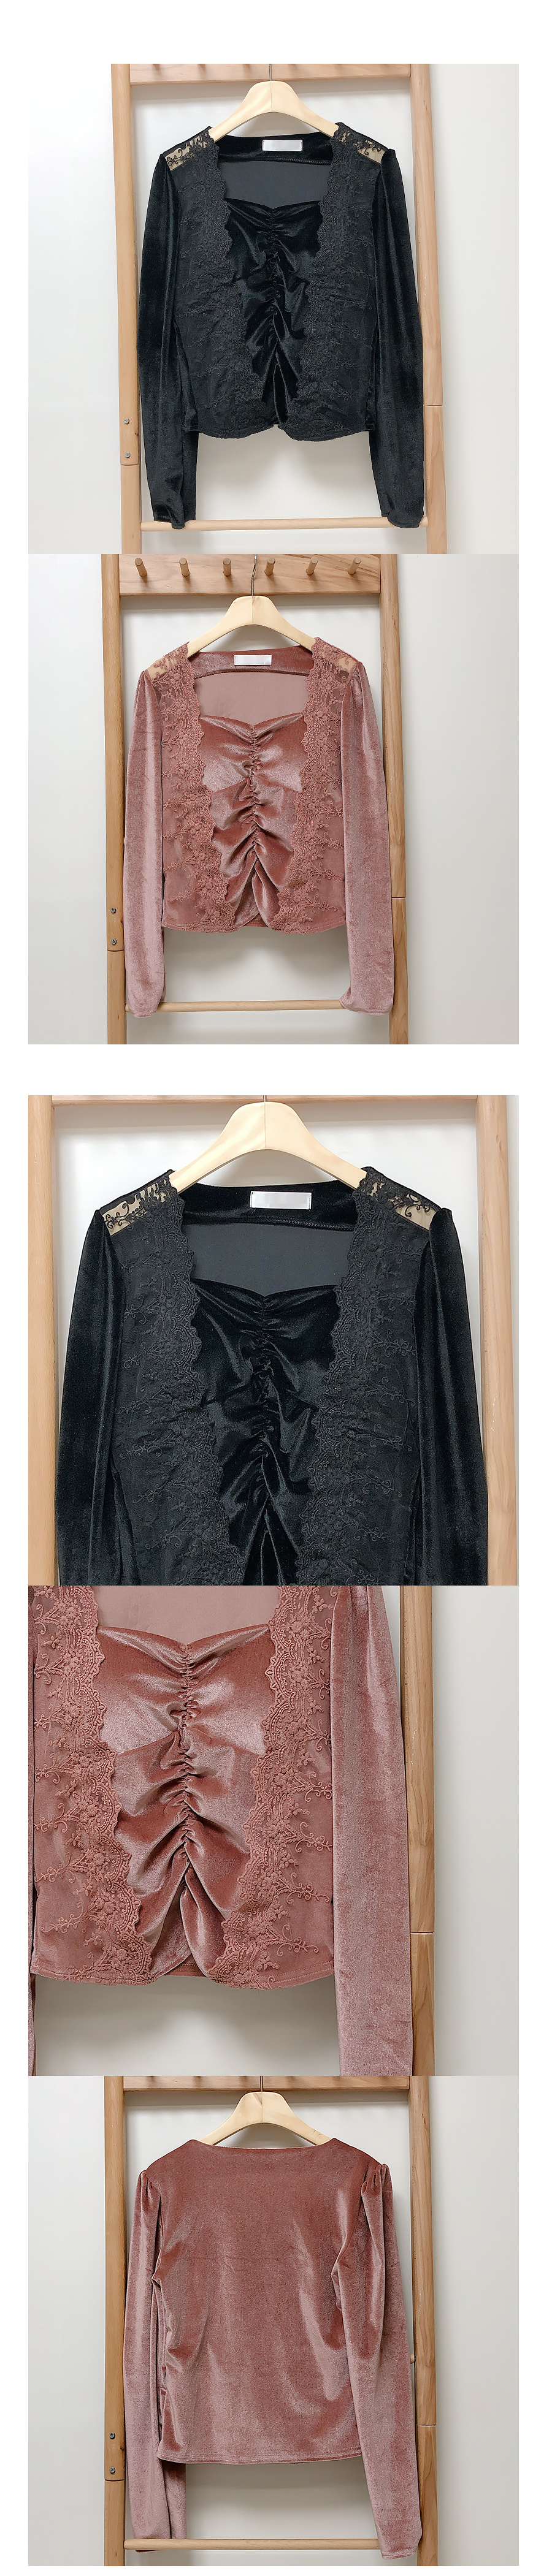 Velvet Lace Shearing Blouse